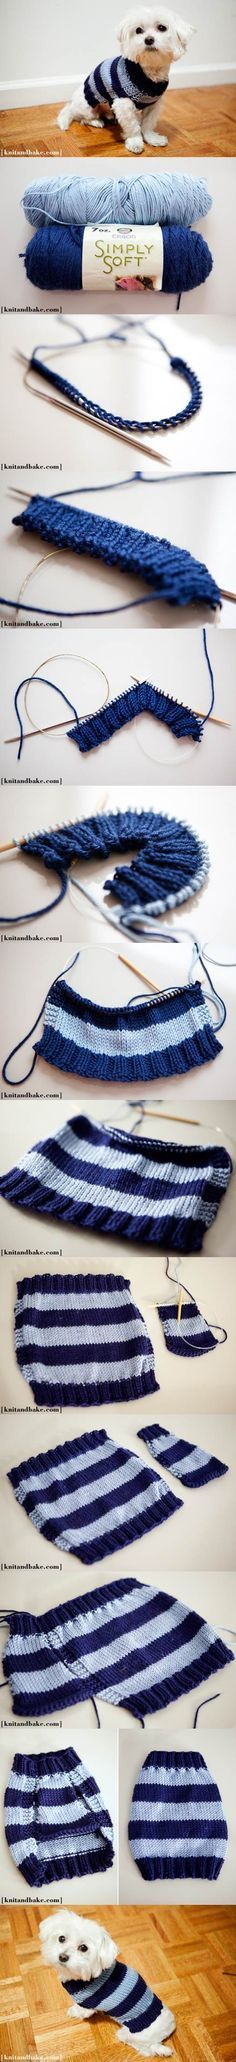 DIY Easy Knitted Dog Sweater 2 | Let\'s hear it for the corgis ...